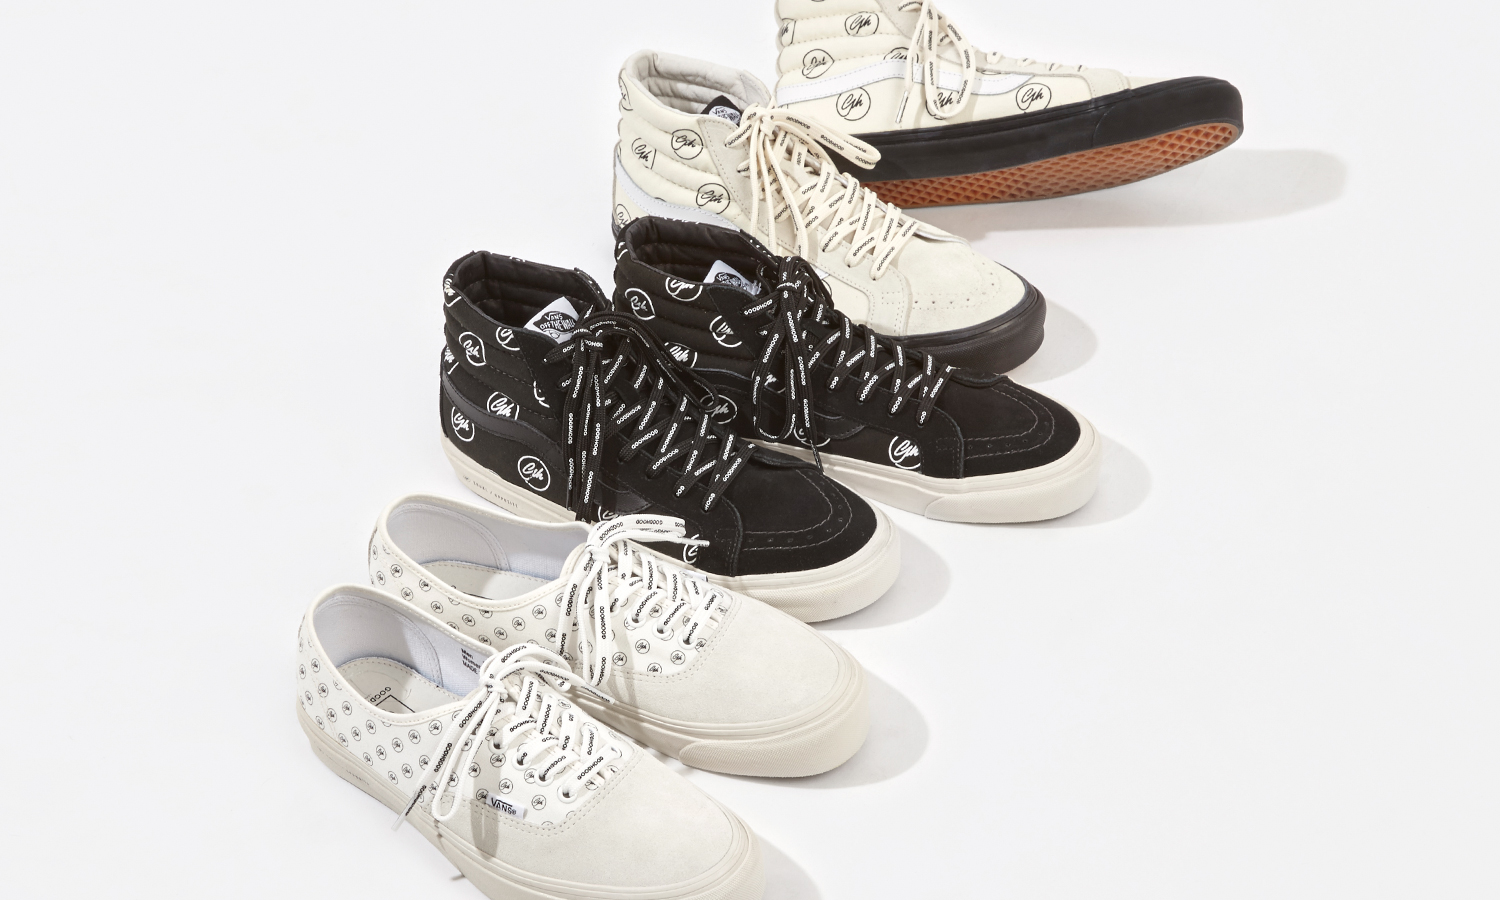 Goodhood x Vans